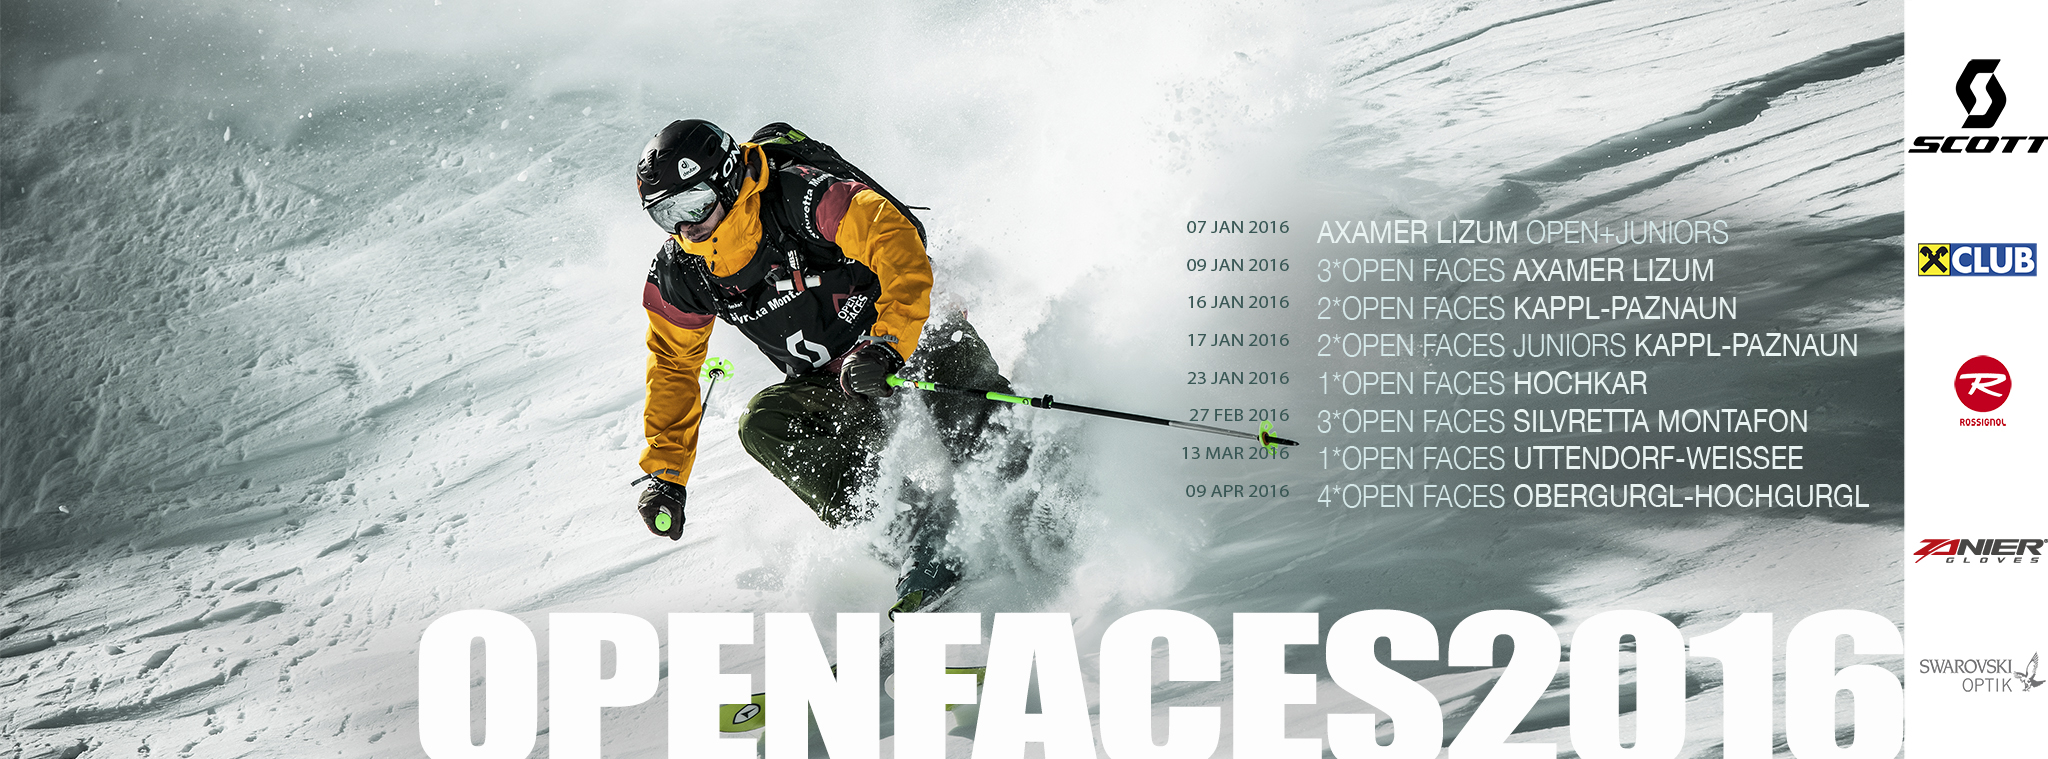 OPEN FACES FREERIDE CONTESTS – Erfolgsstory geht weiter